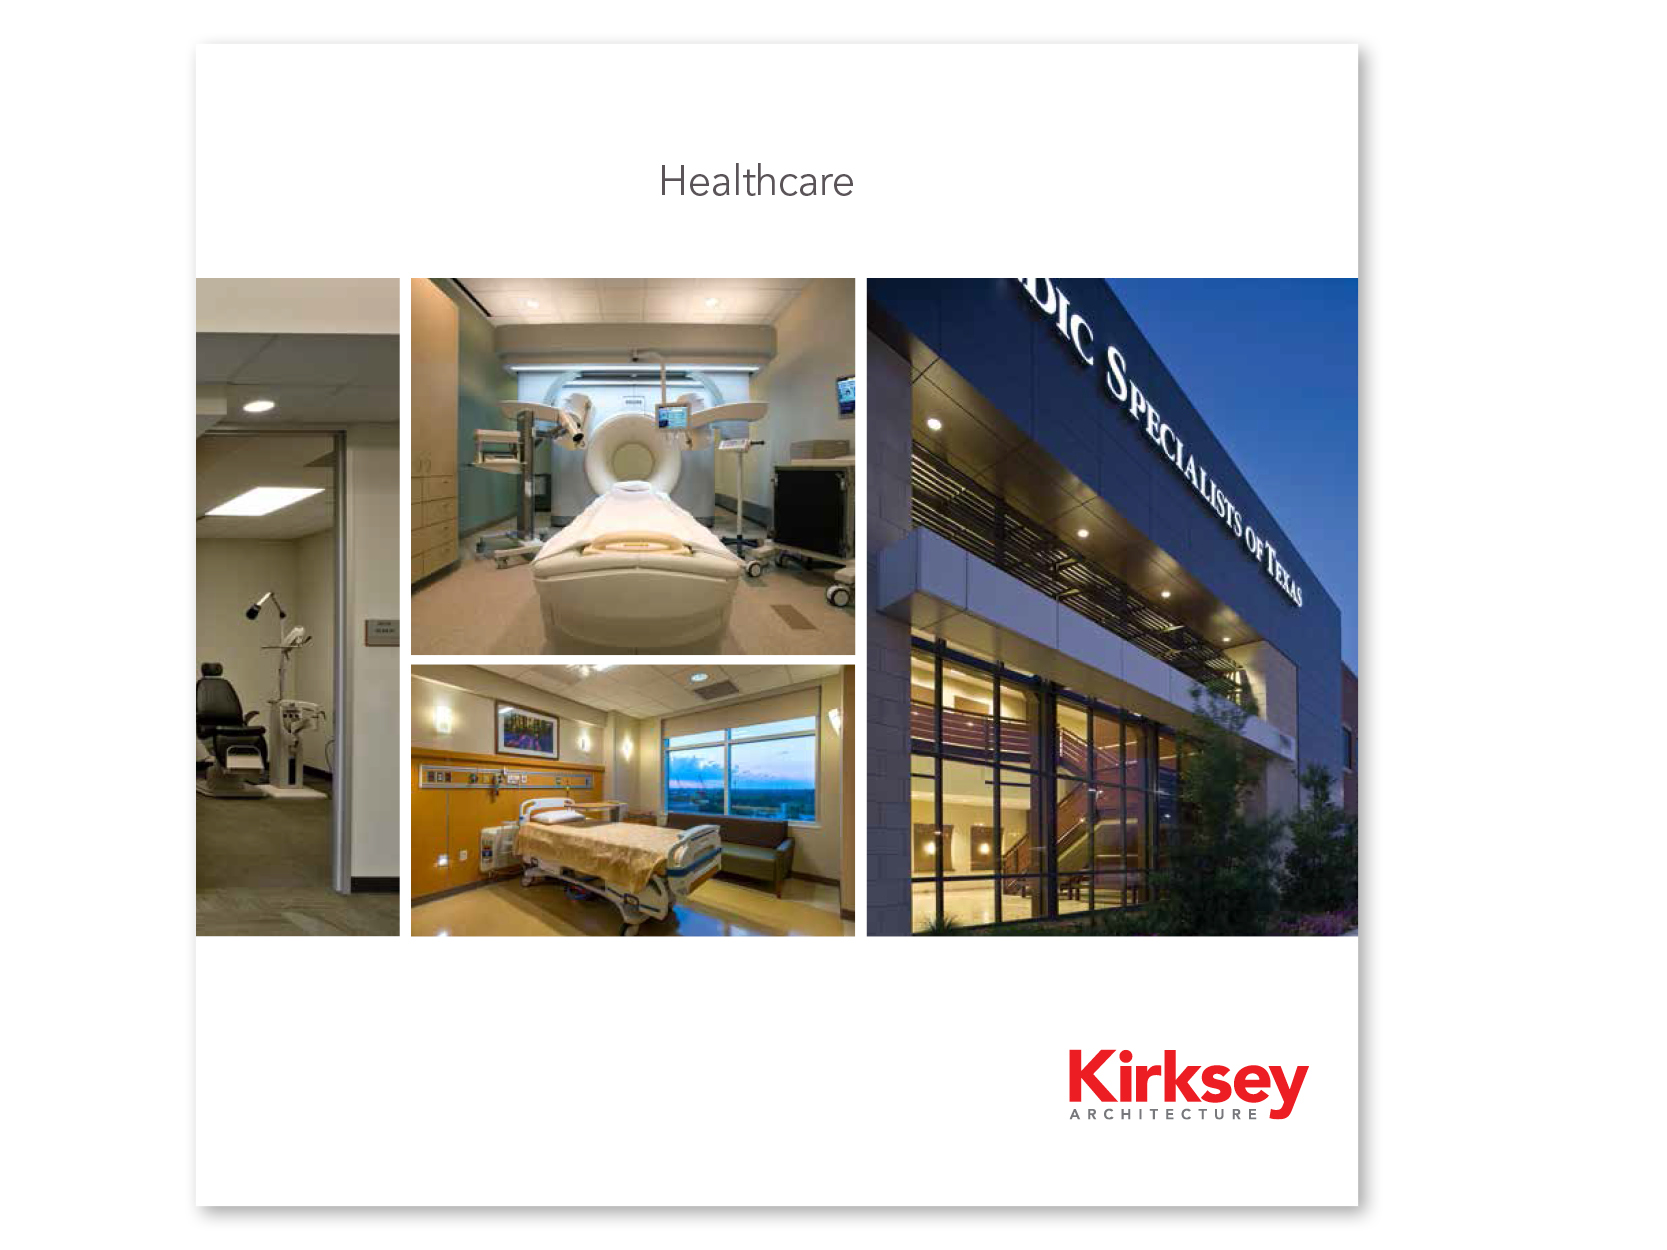 Preview of the resource library item for We're Kirksey Healthcare